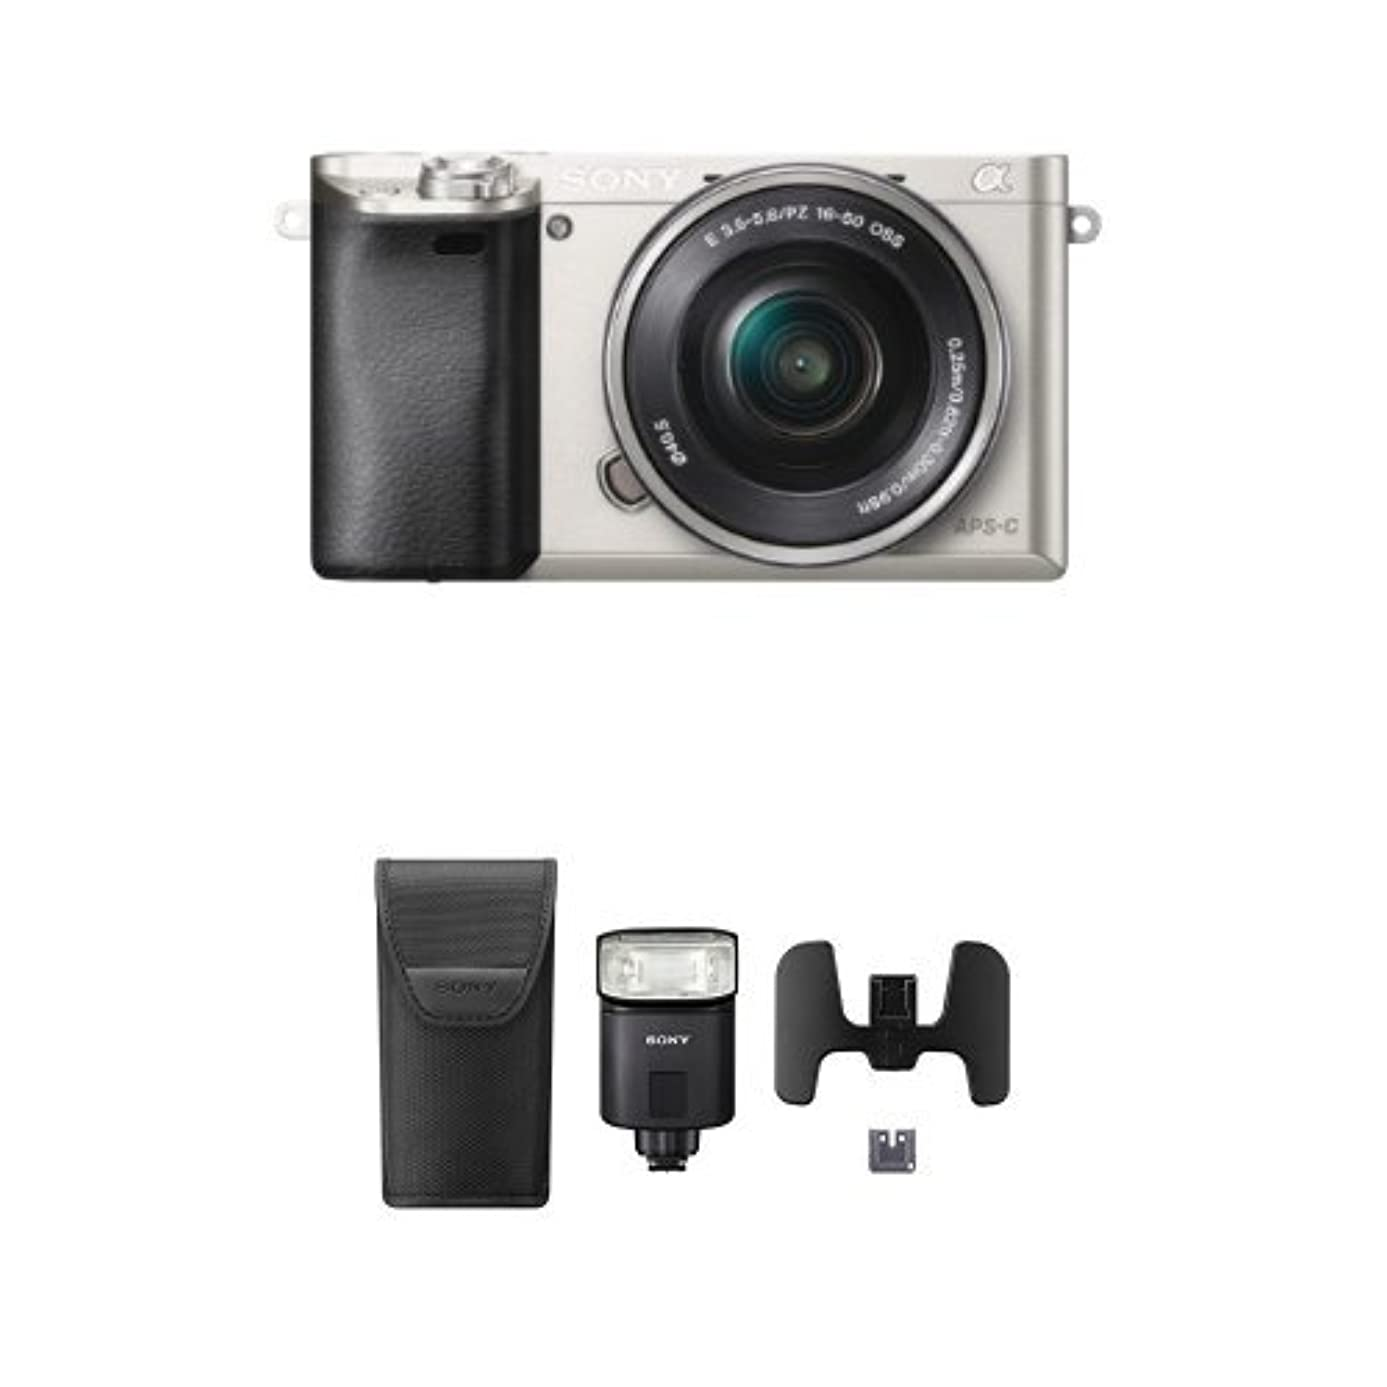 Sony Alpha a6000 Mirrorless Digital Camera with 16-50mm Power Zoom Lens (Silver) with Flash Bundle